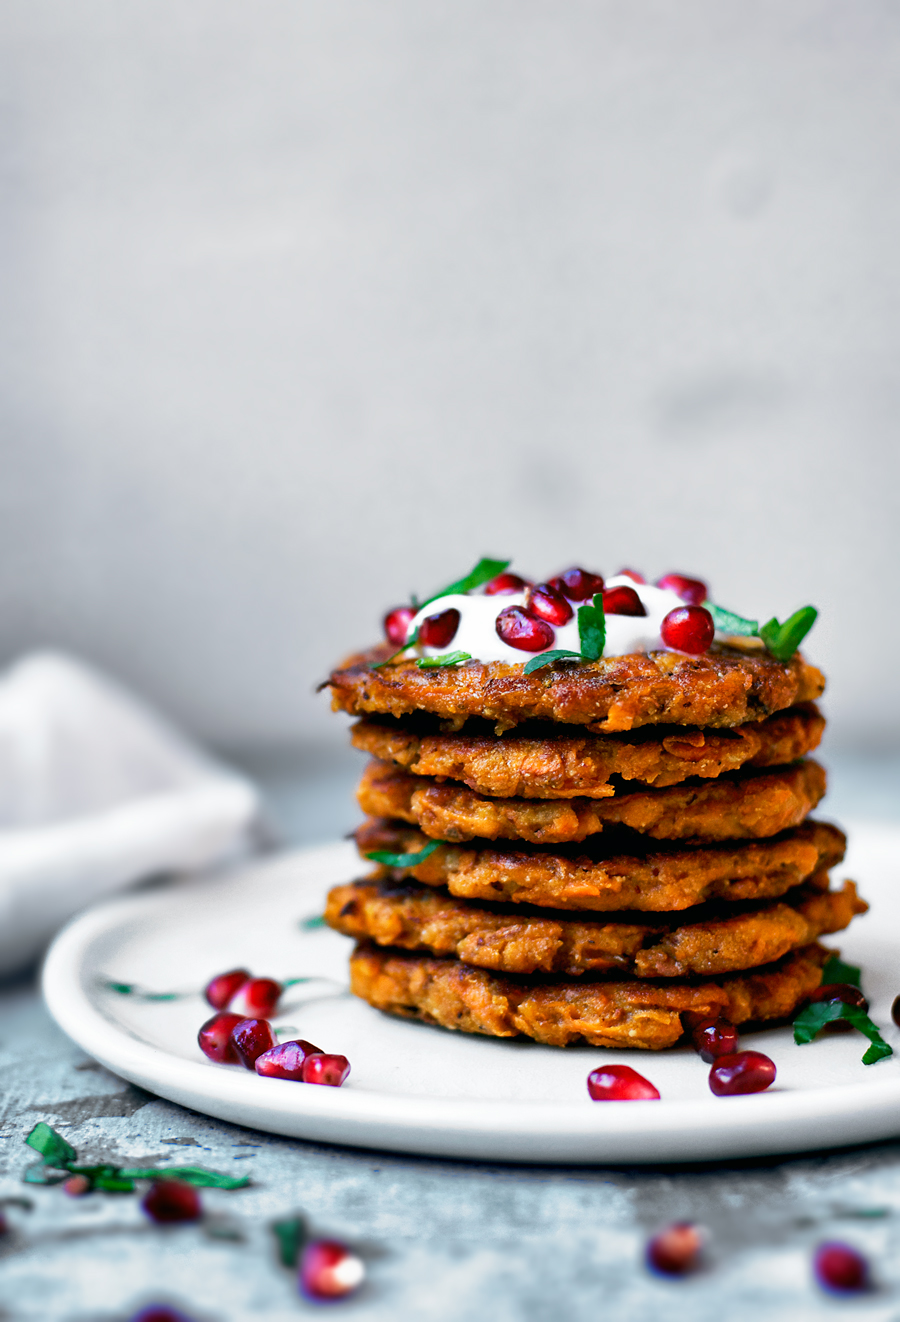 Vegan sweet potato pancakes, or latkes, with chickpea flour and plenty of spice. These are gluten free, so easy, and perfectly crisp. Potato pancakes are one of the easiest things to make, not any more difficult than regular pancakes, and a great speedy meal for any time of day.